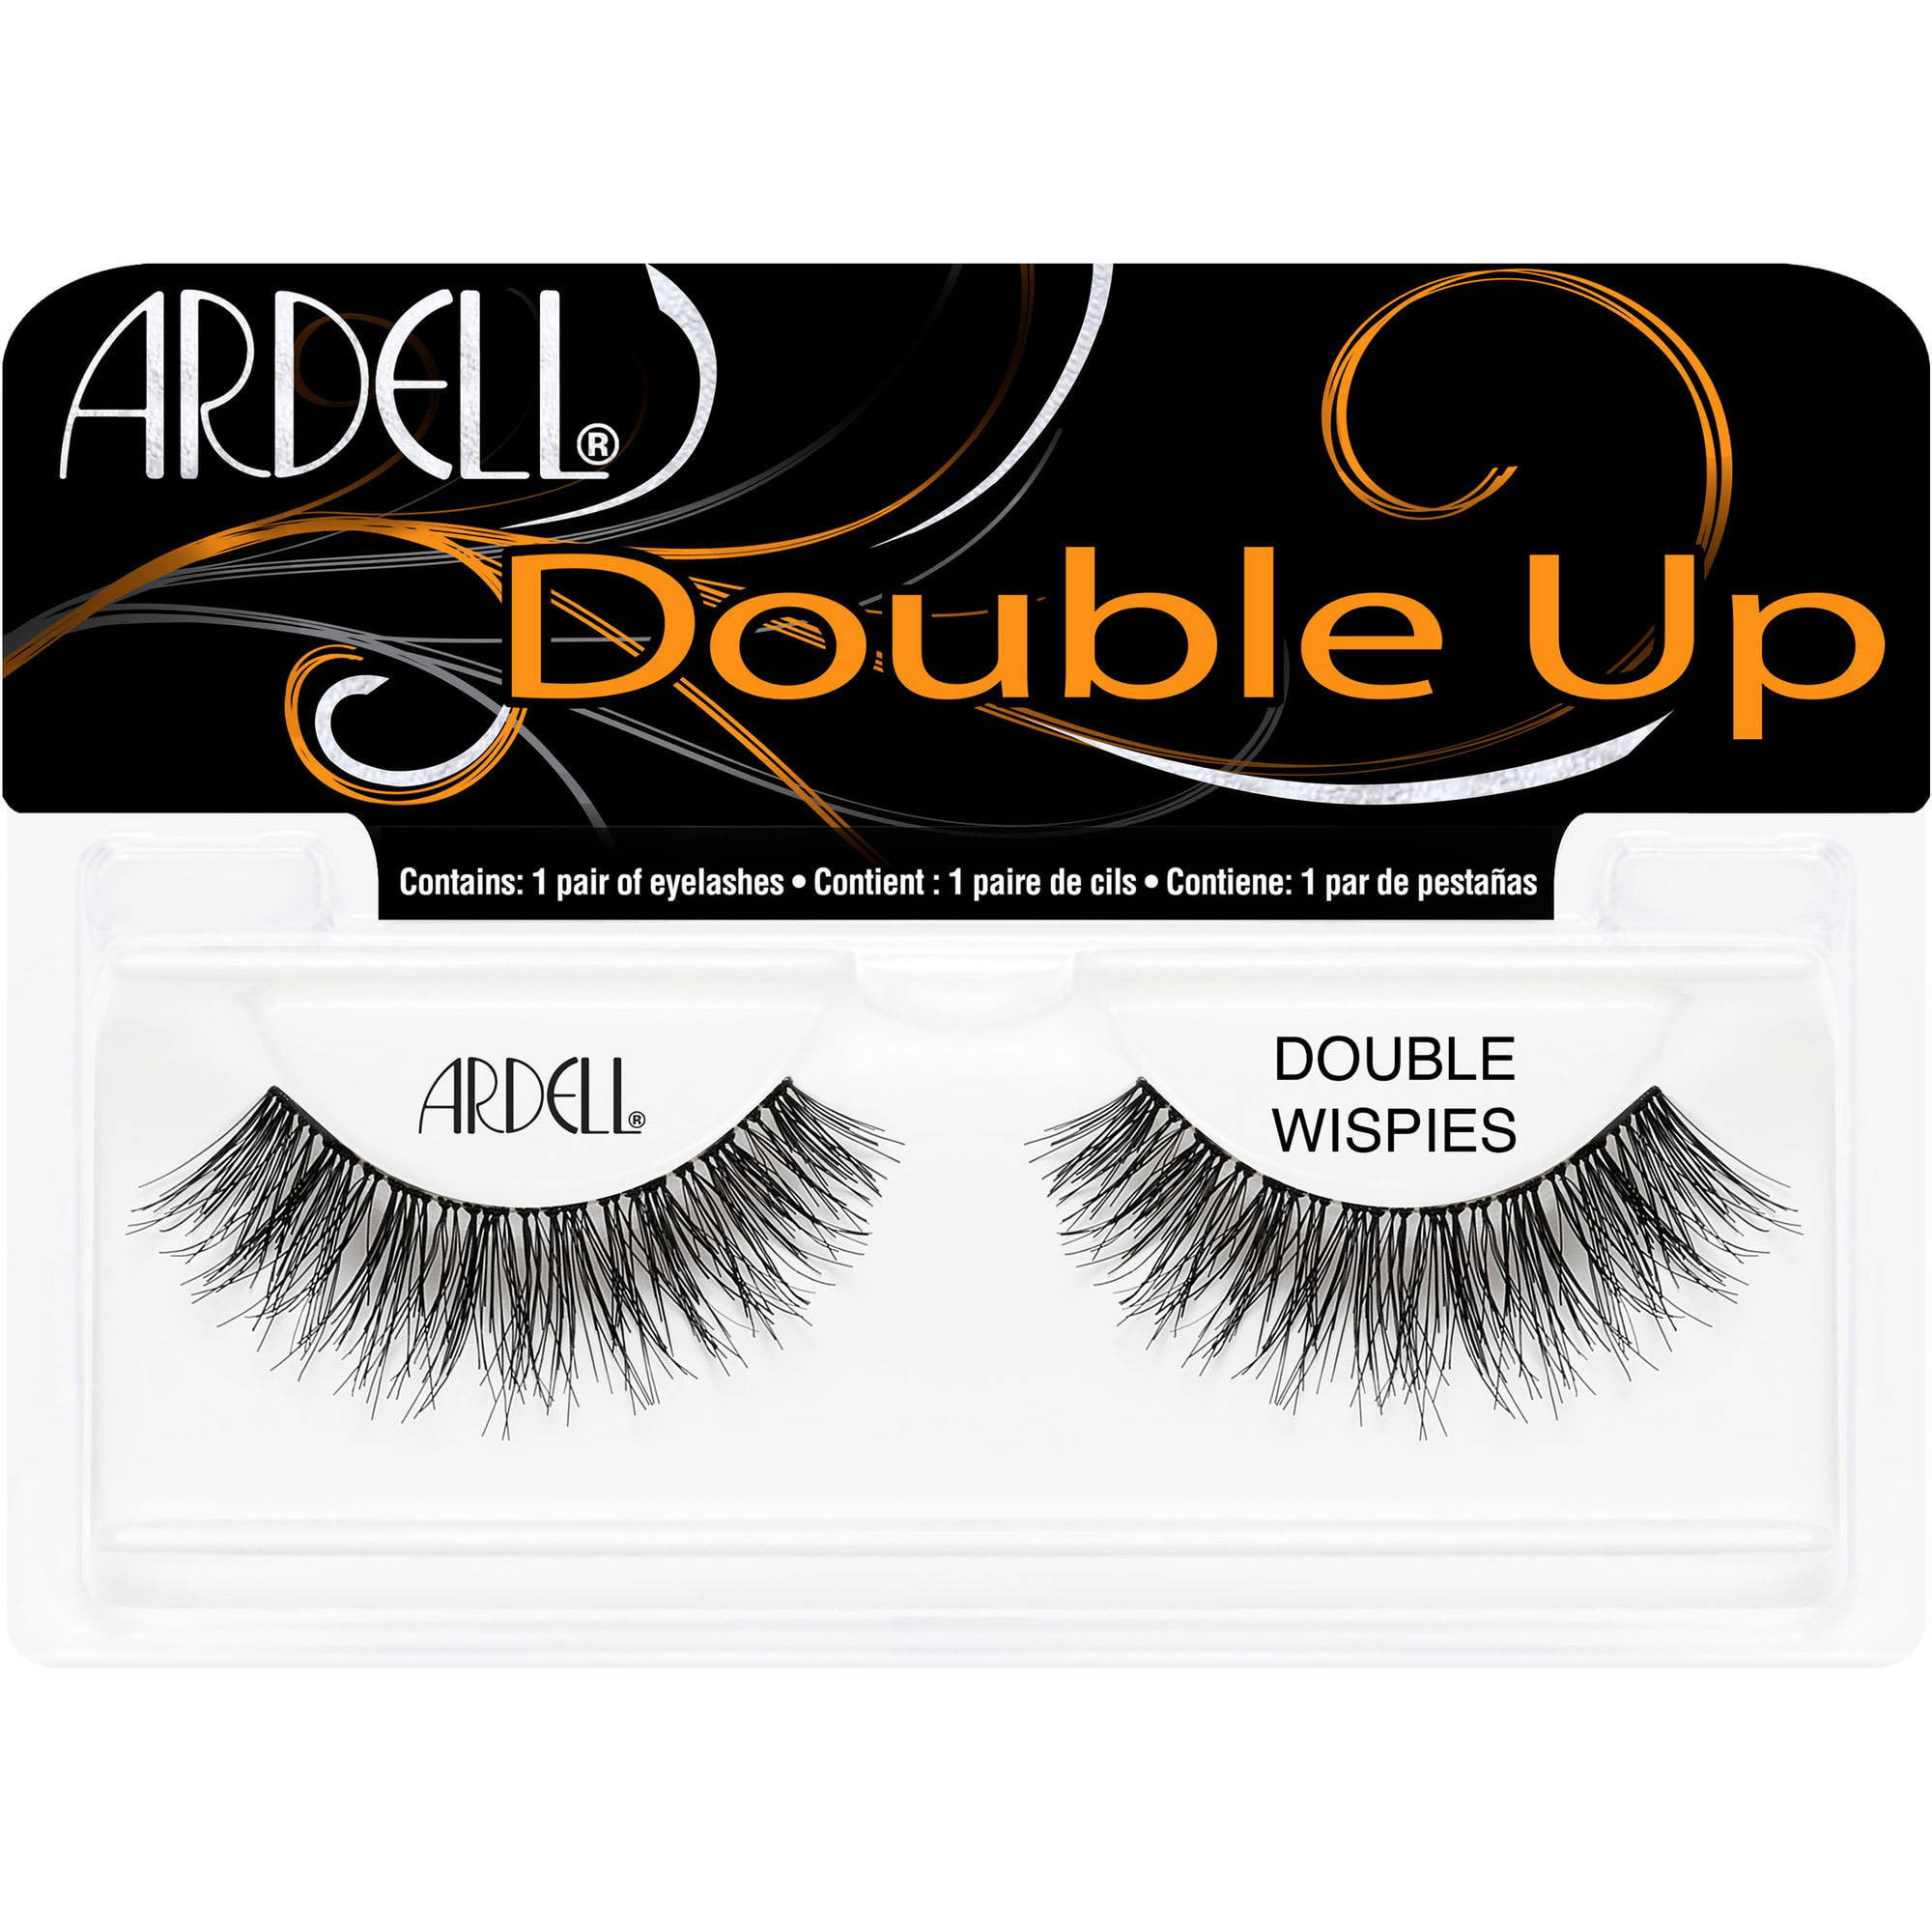 3bd3e7e299c Ardell Double Up, Double Wispies - Walmart.com